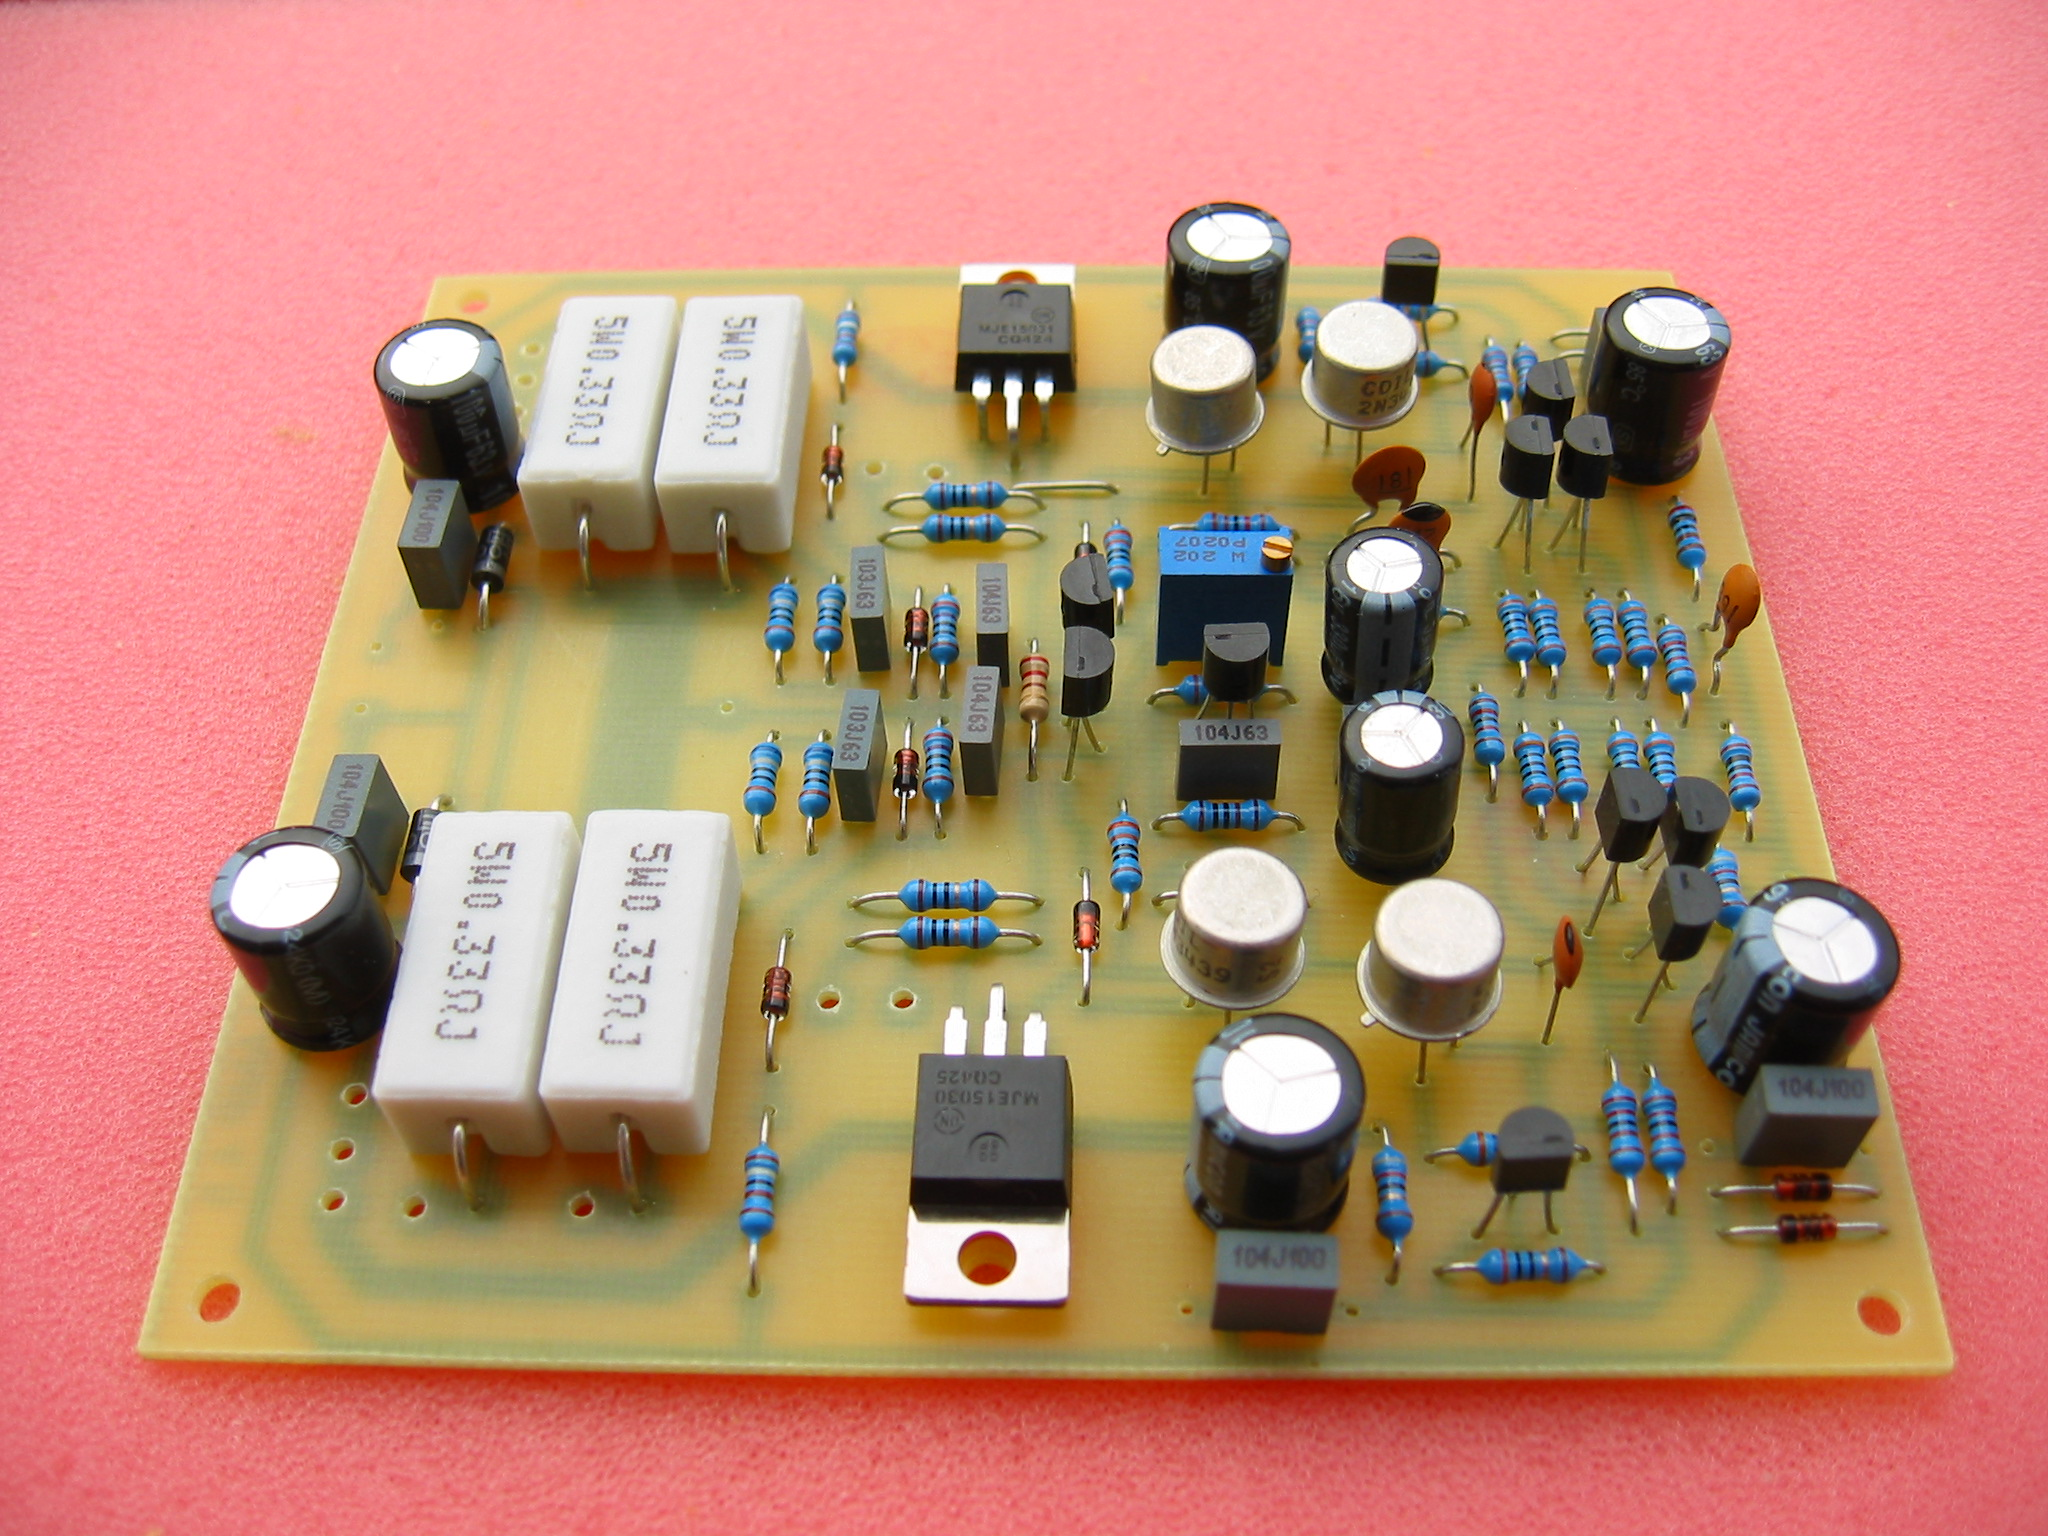 Diagram Amplifier Tda2050 32w Hi Fi Audio With Circuit Comment On Diy Chip View All Posts In